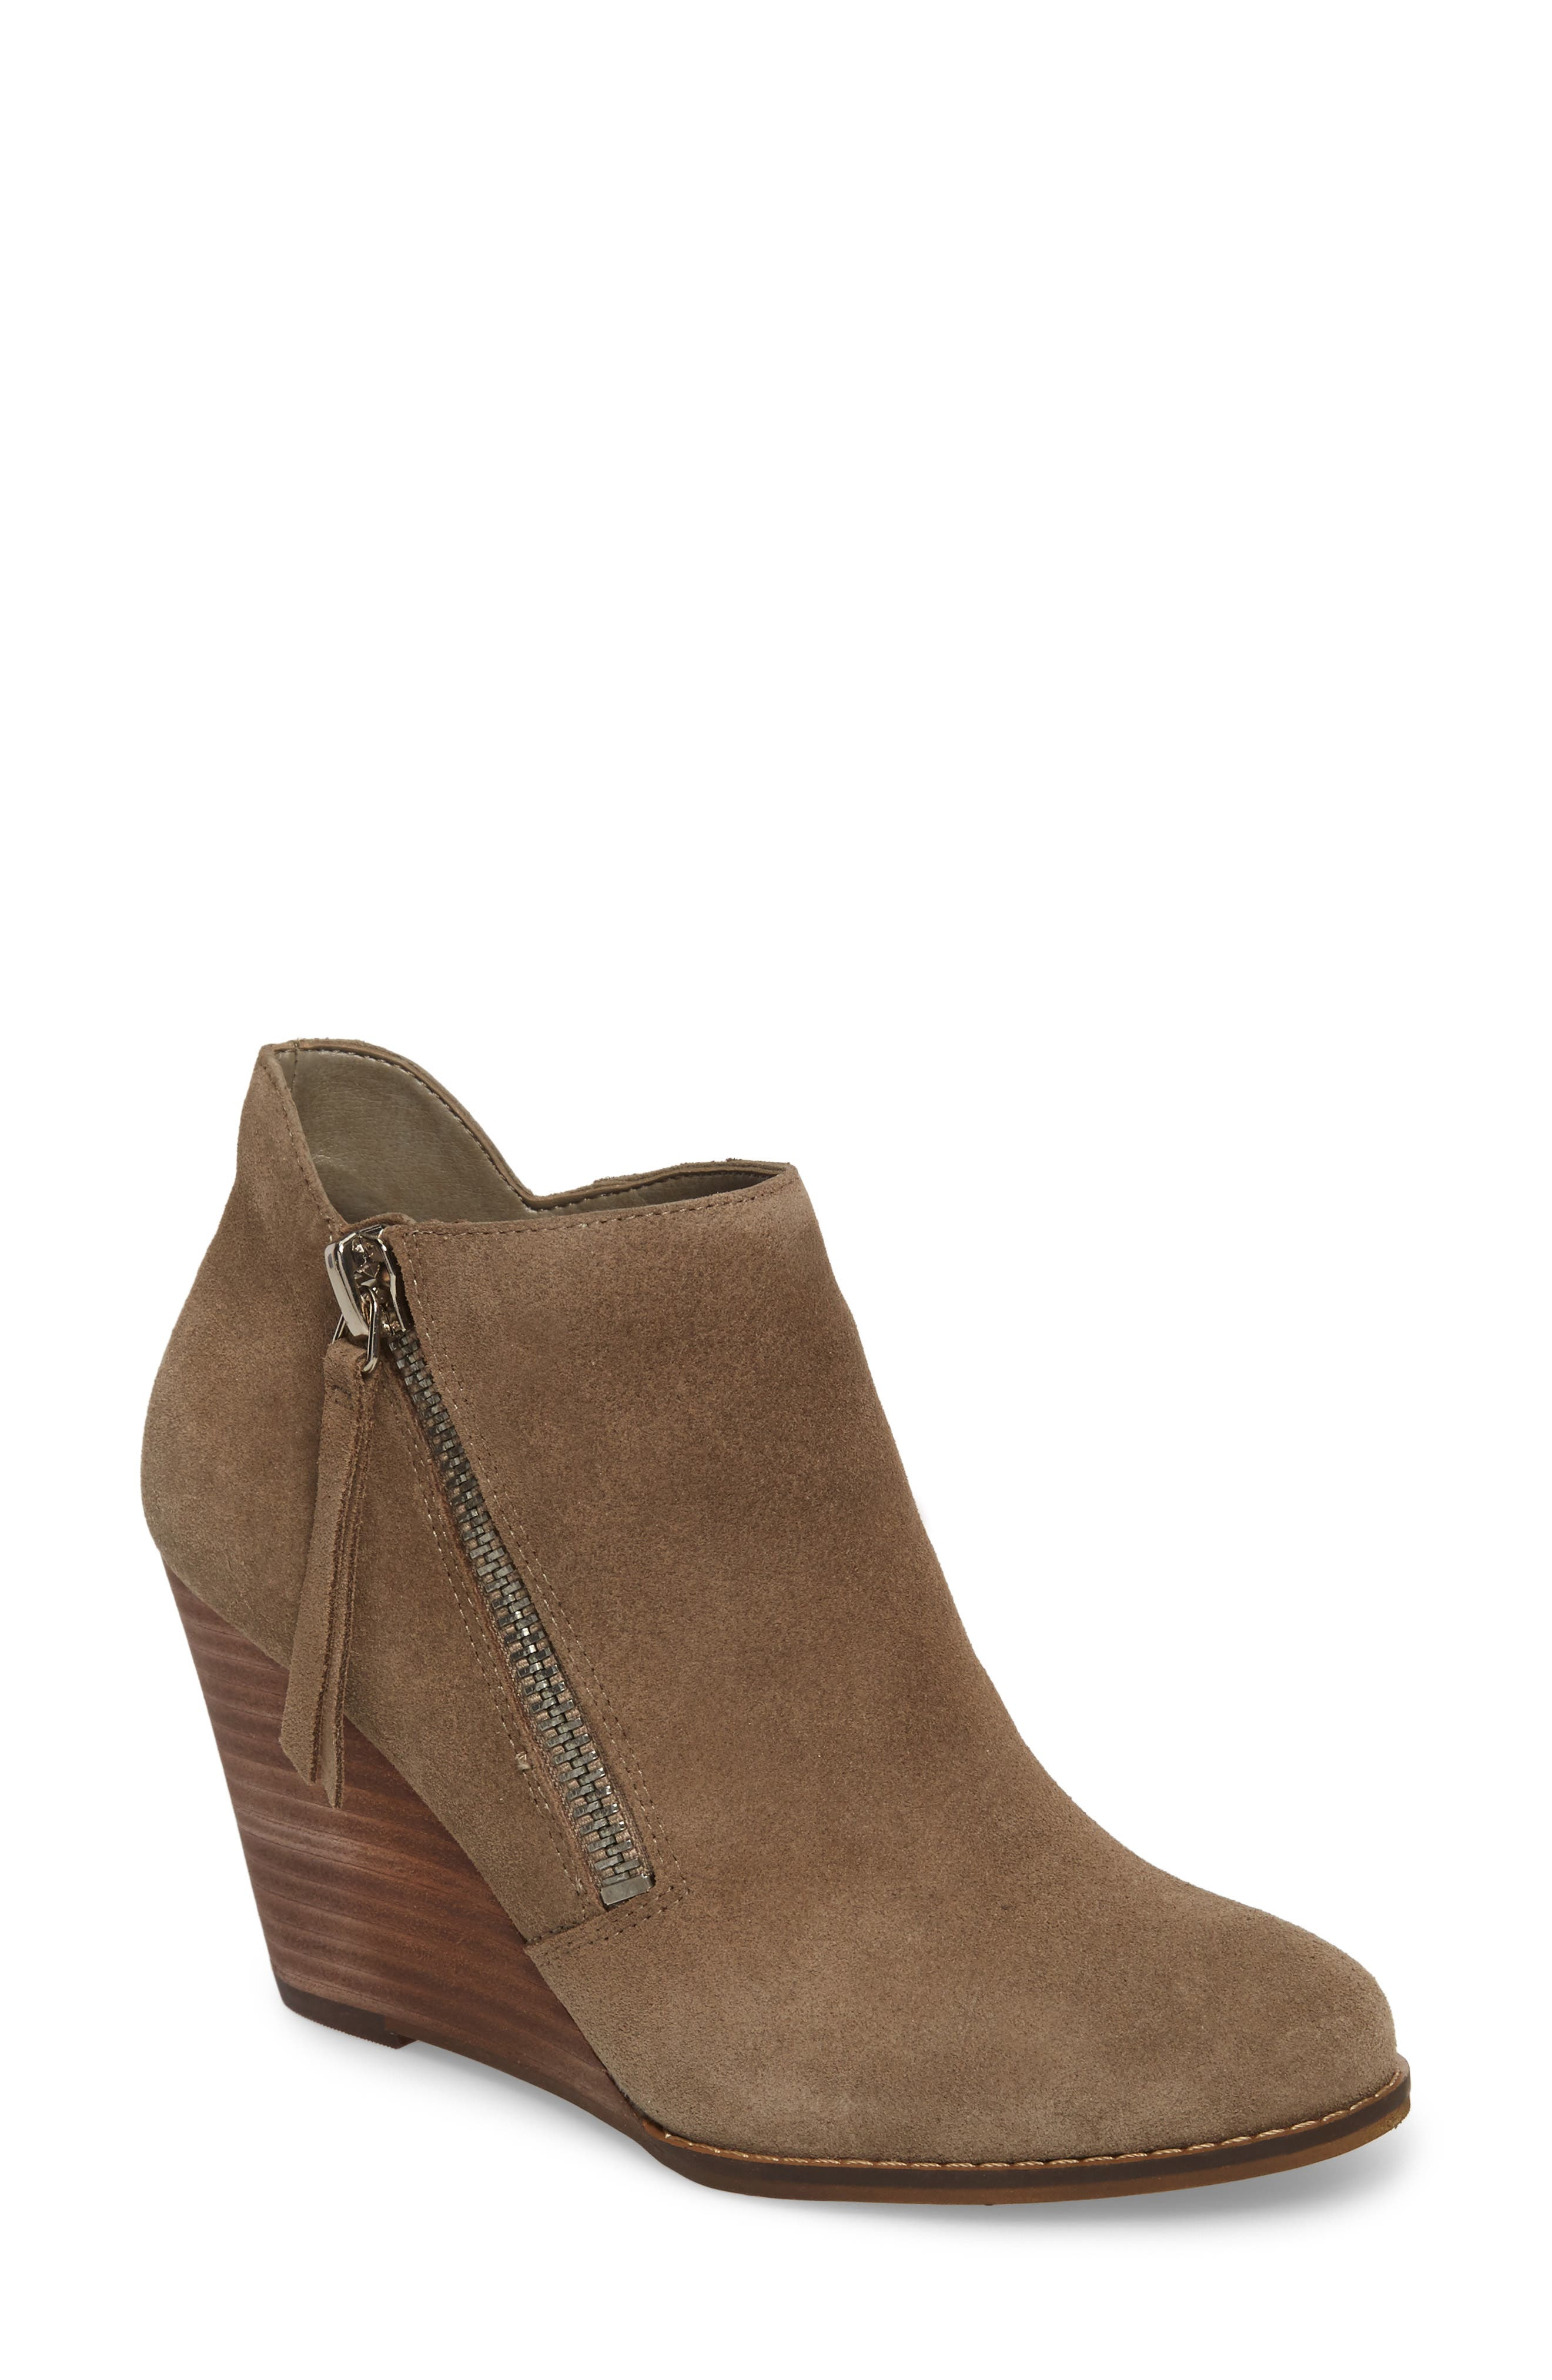 Carnivela Wedge Bootie,                         Main,                         color, Greyhound Suede